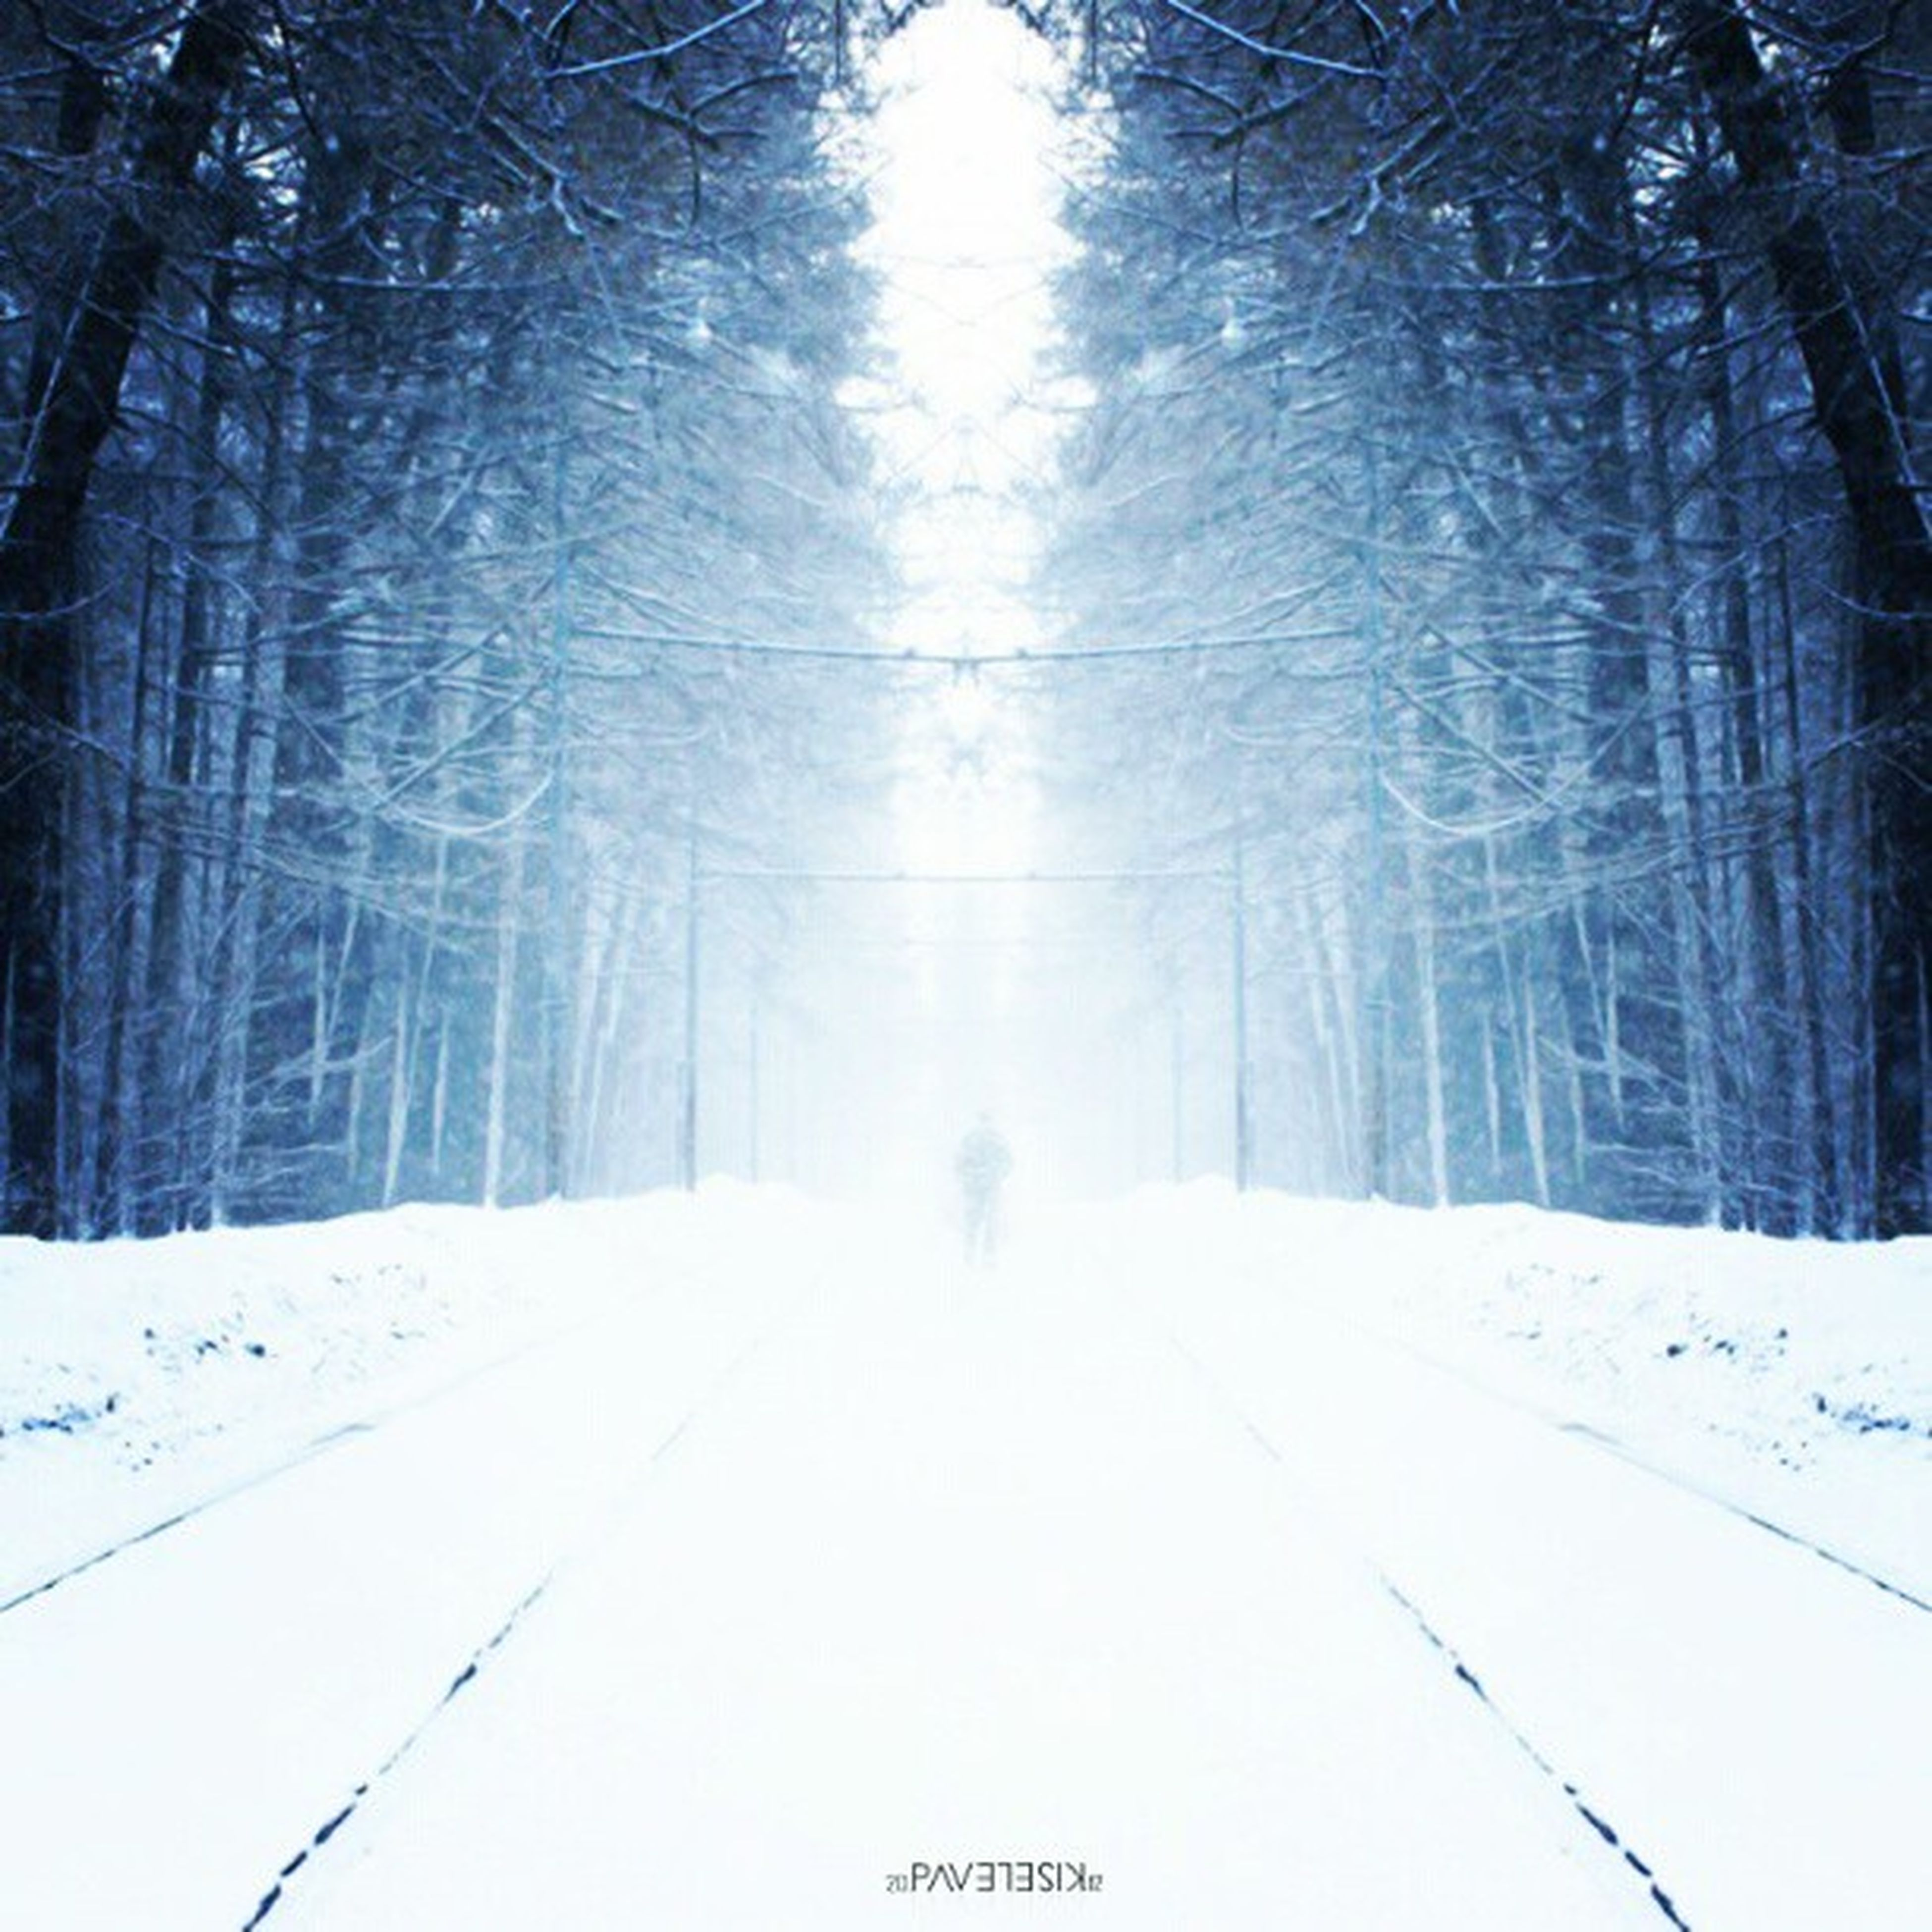 snow, winter, cold temperature, season, weather, tree, the way forward, covering, tranquility, forest, nature, tranquil scene, white color, bare tree, frozen, diminishing perspective, beauty in nature, covered, vanishing point, woodland